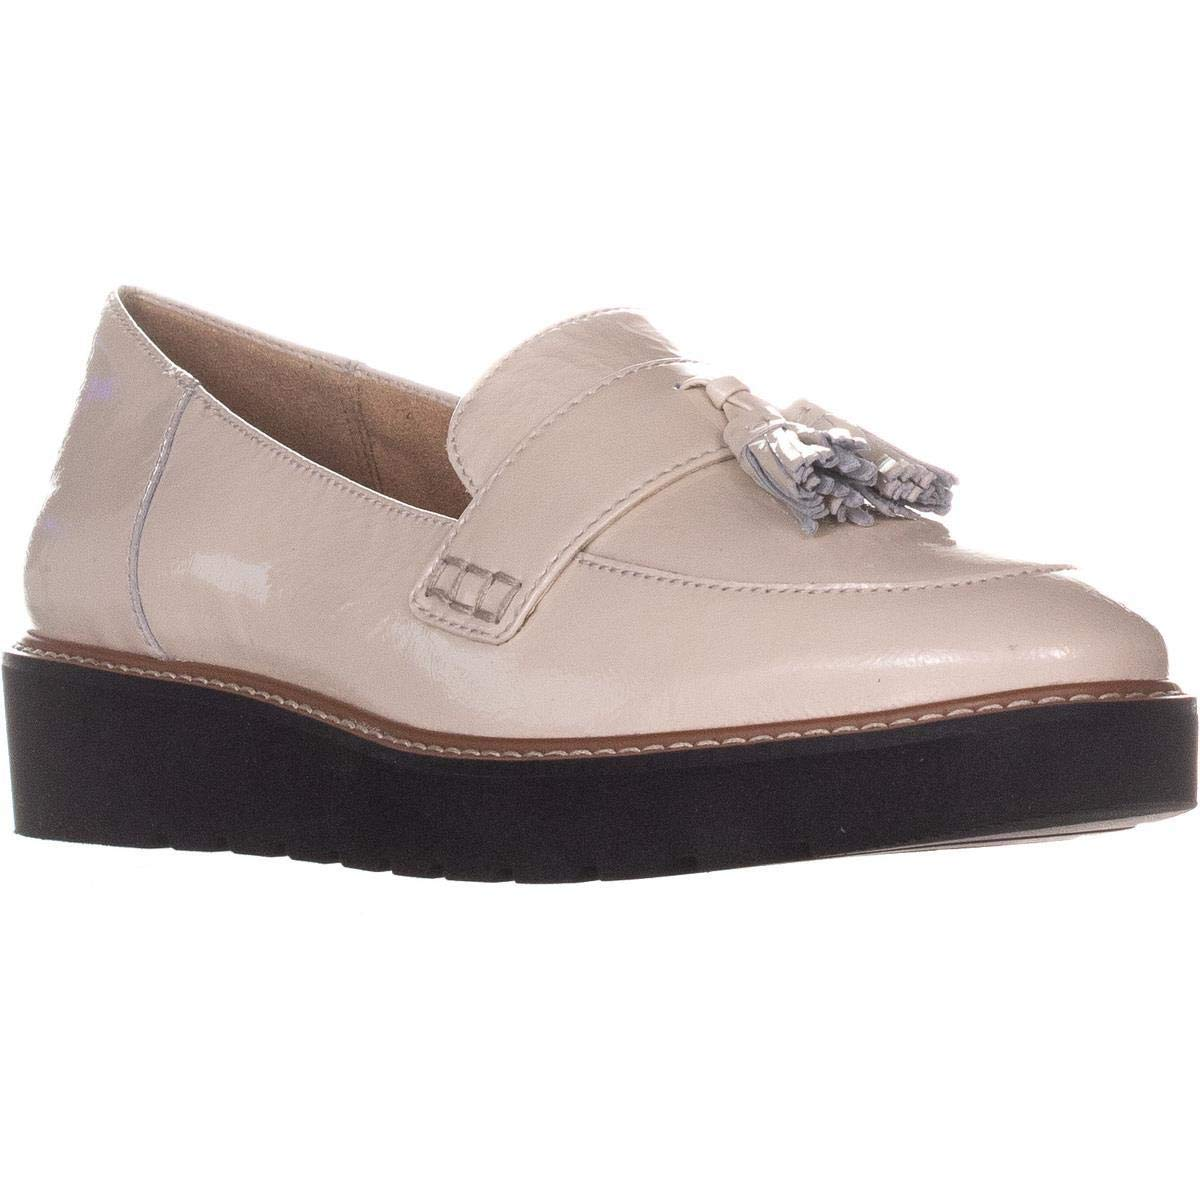 Alabaster Naturalizer Women's August Slip-On Loafers